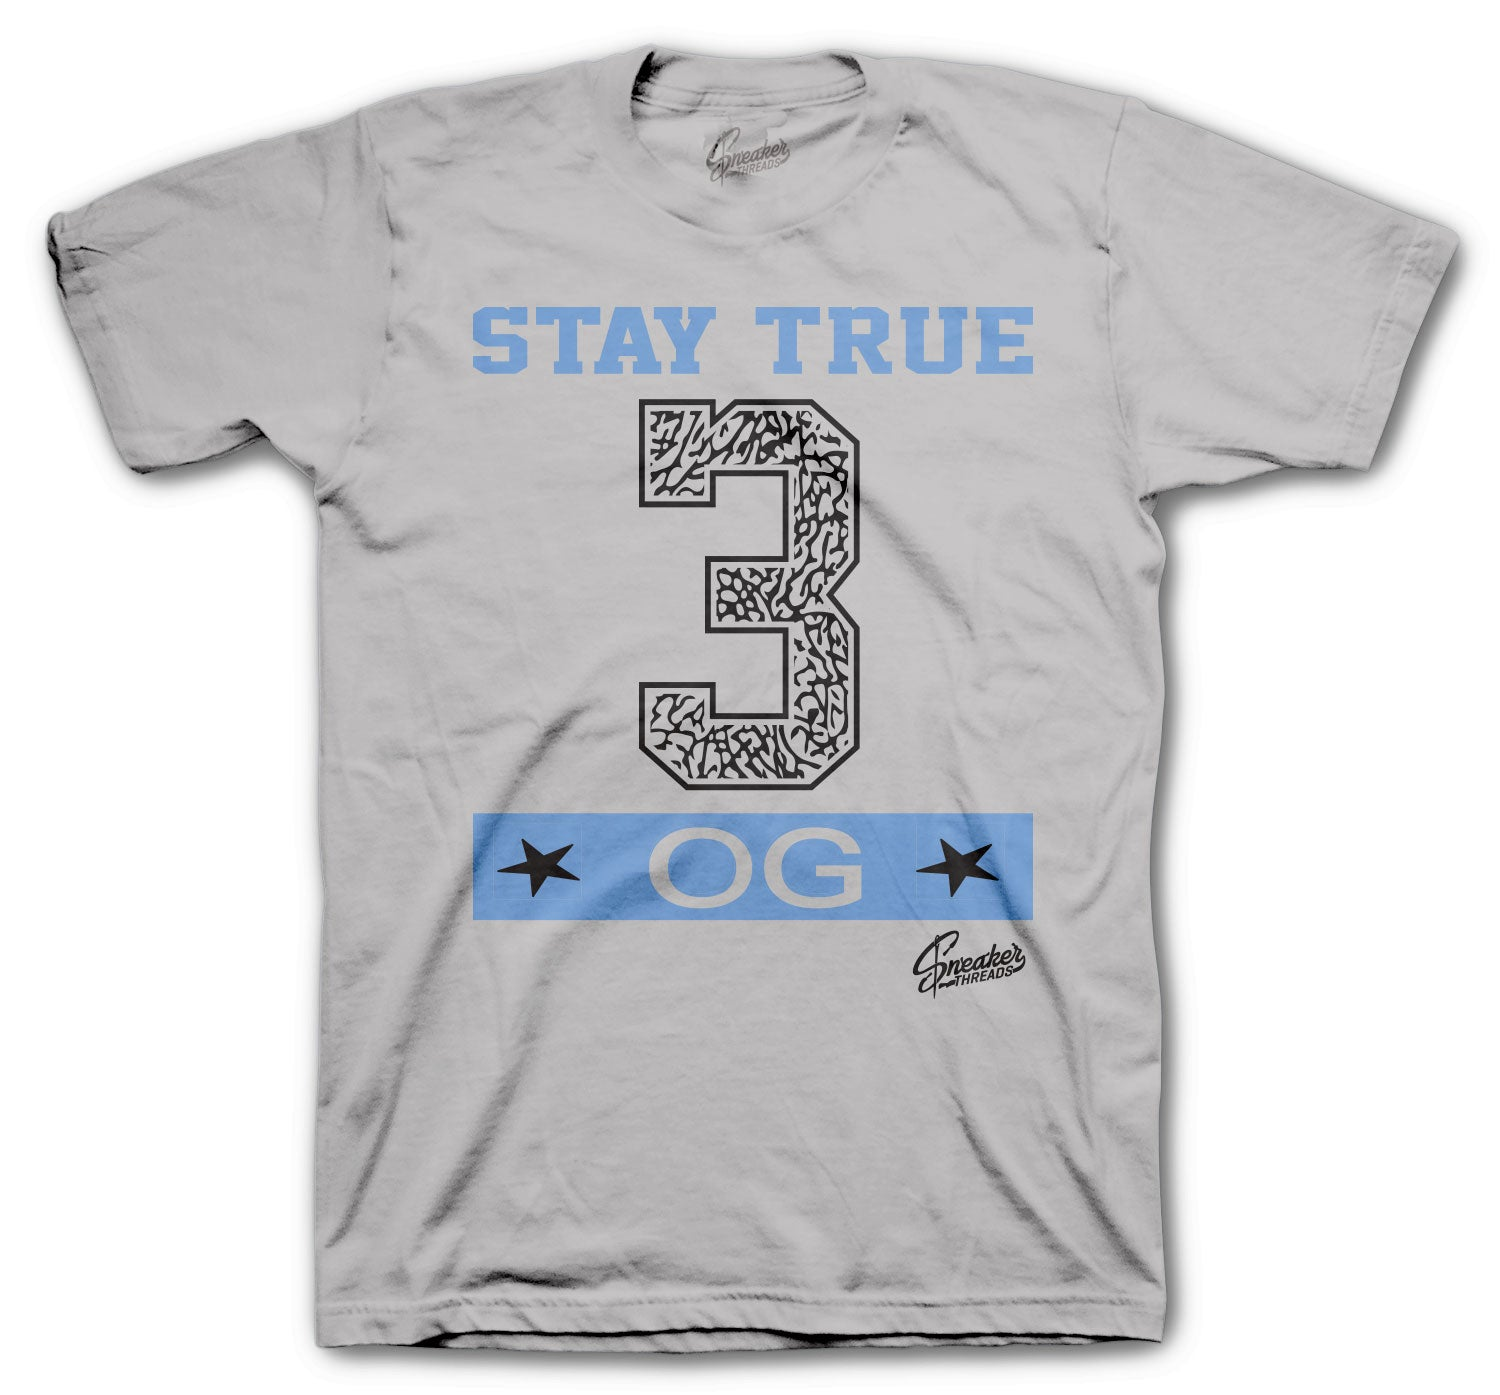 Jordan 3 UNC Shirt - Stay True - Grey